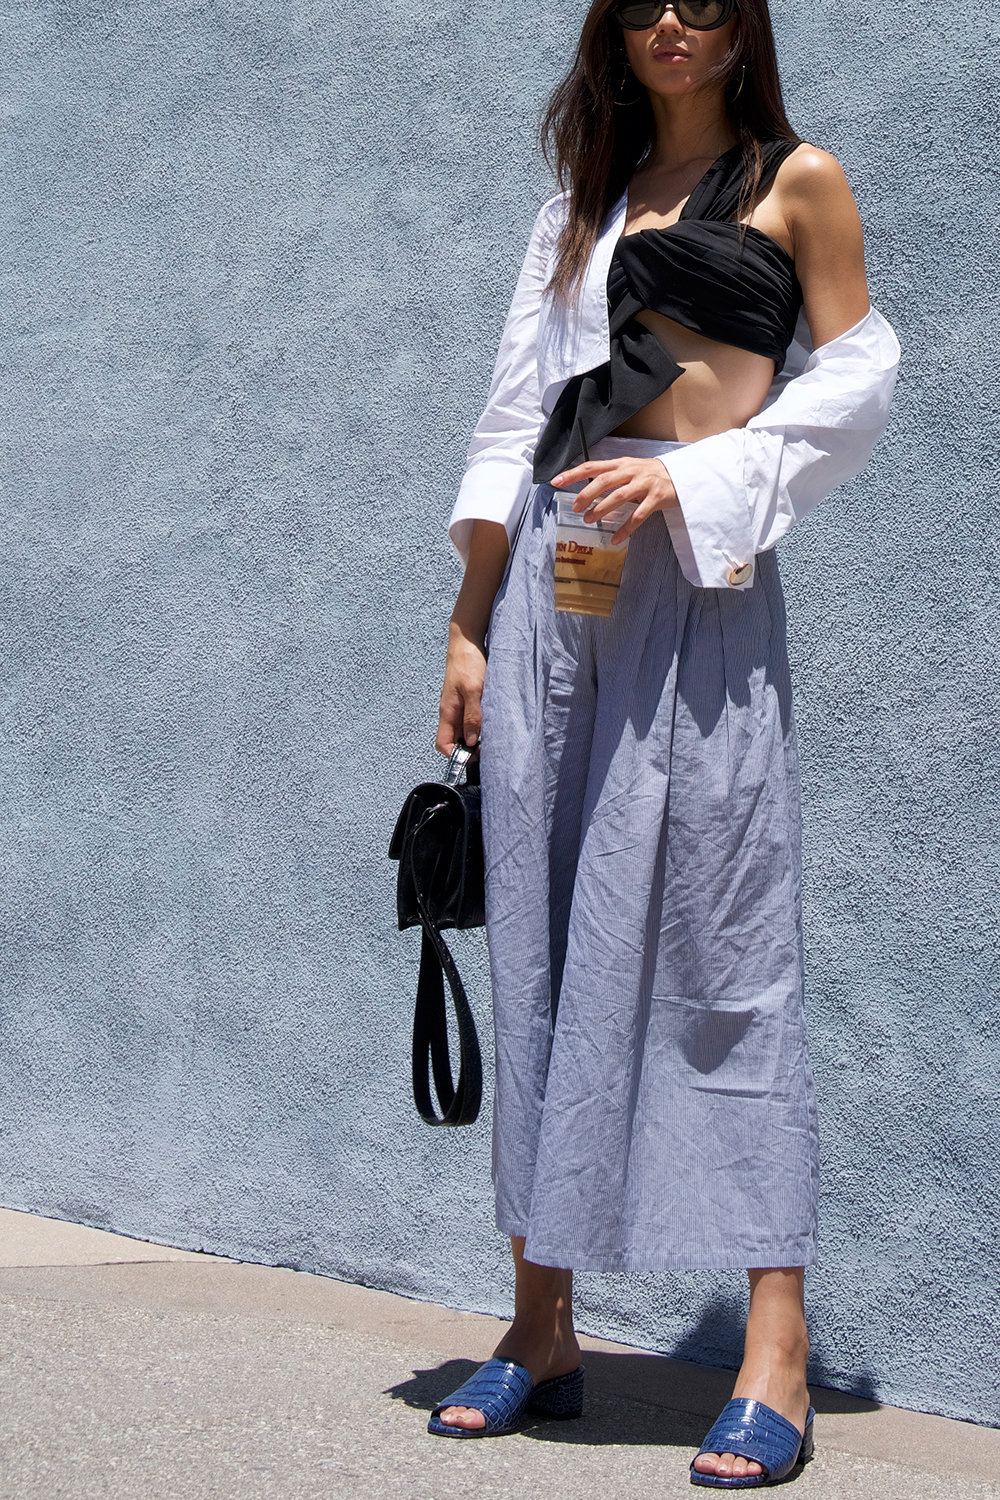 Neon Blush, AQ/AQ bandeau top, MISA Los Angeles wide leg trousers, RAEN sunglasses, Elizabeth and James leather croc mini handbag, Maryam Nassir Zadeh croc leather sandals, Adornmonde star hoop earrings, J.O.A. white button up